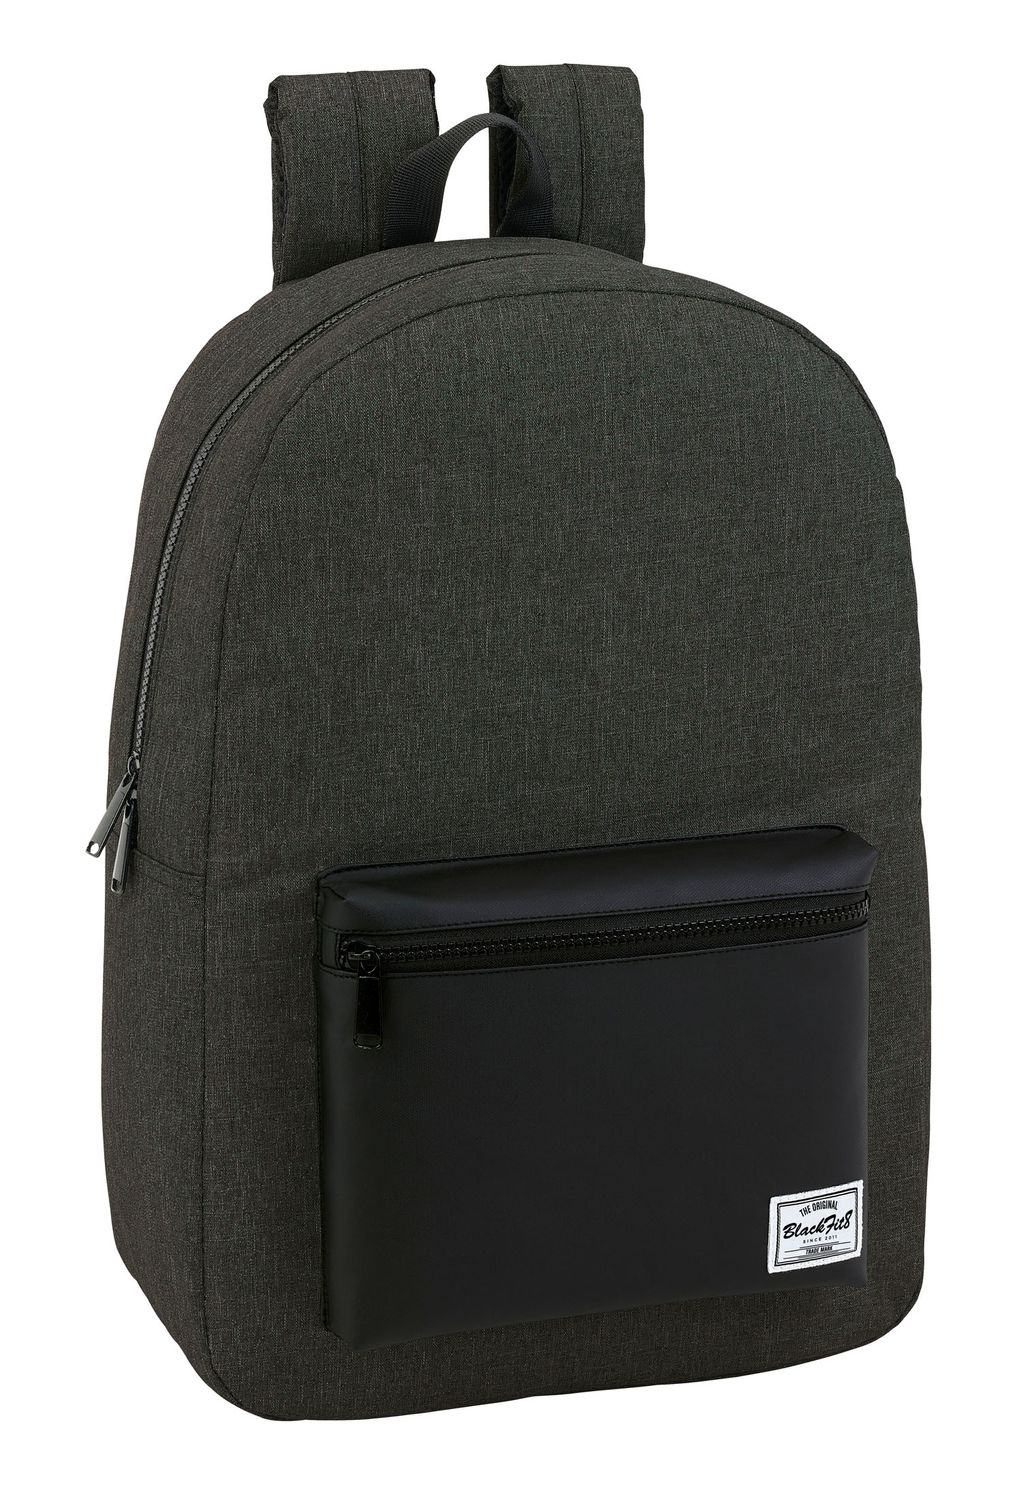 "Blackfit Black & Black Laptop Backpack 15.6"" – image 1"